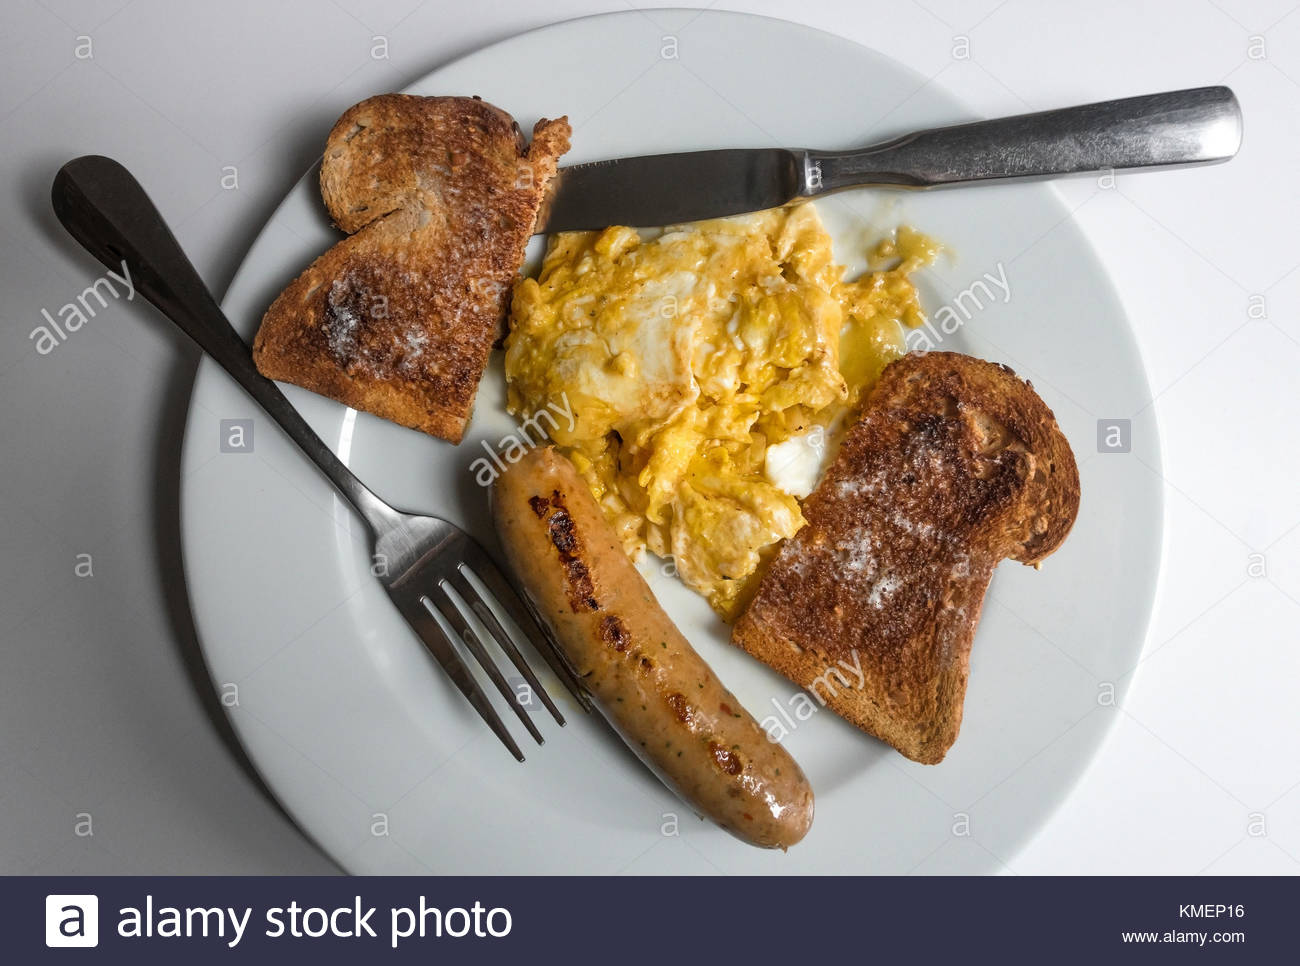 Scrambled Eggs With Cheese A Sausage And Whole Wheat Toast